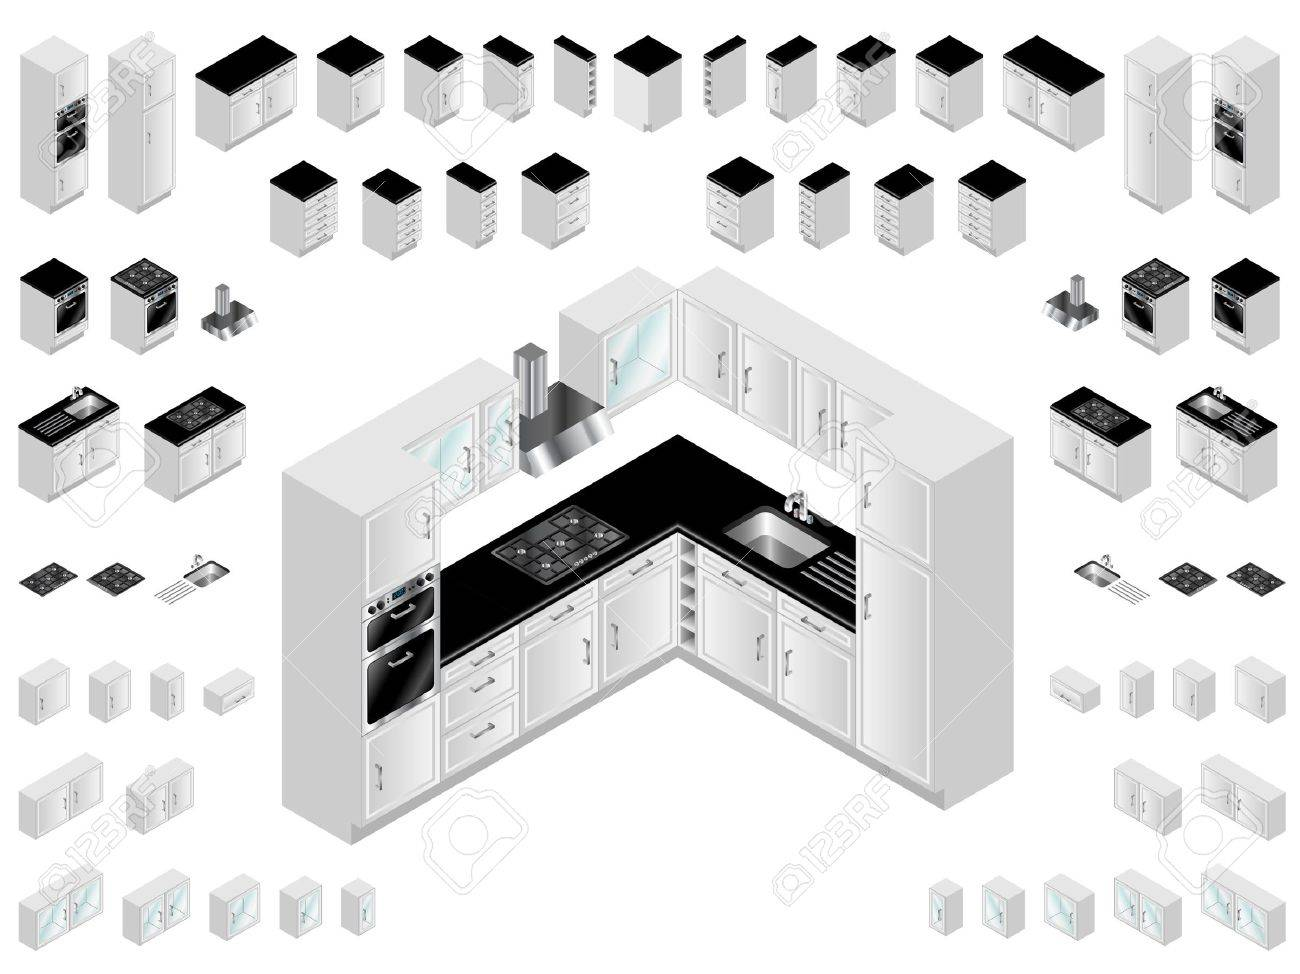 kitchen design elements large selection of isometric kitchen kitchen design elements large selection of isometric kitchen units for room layout and design